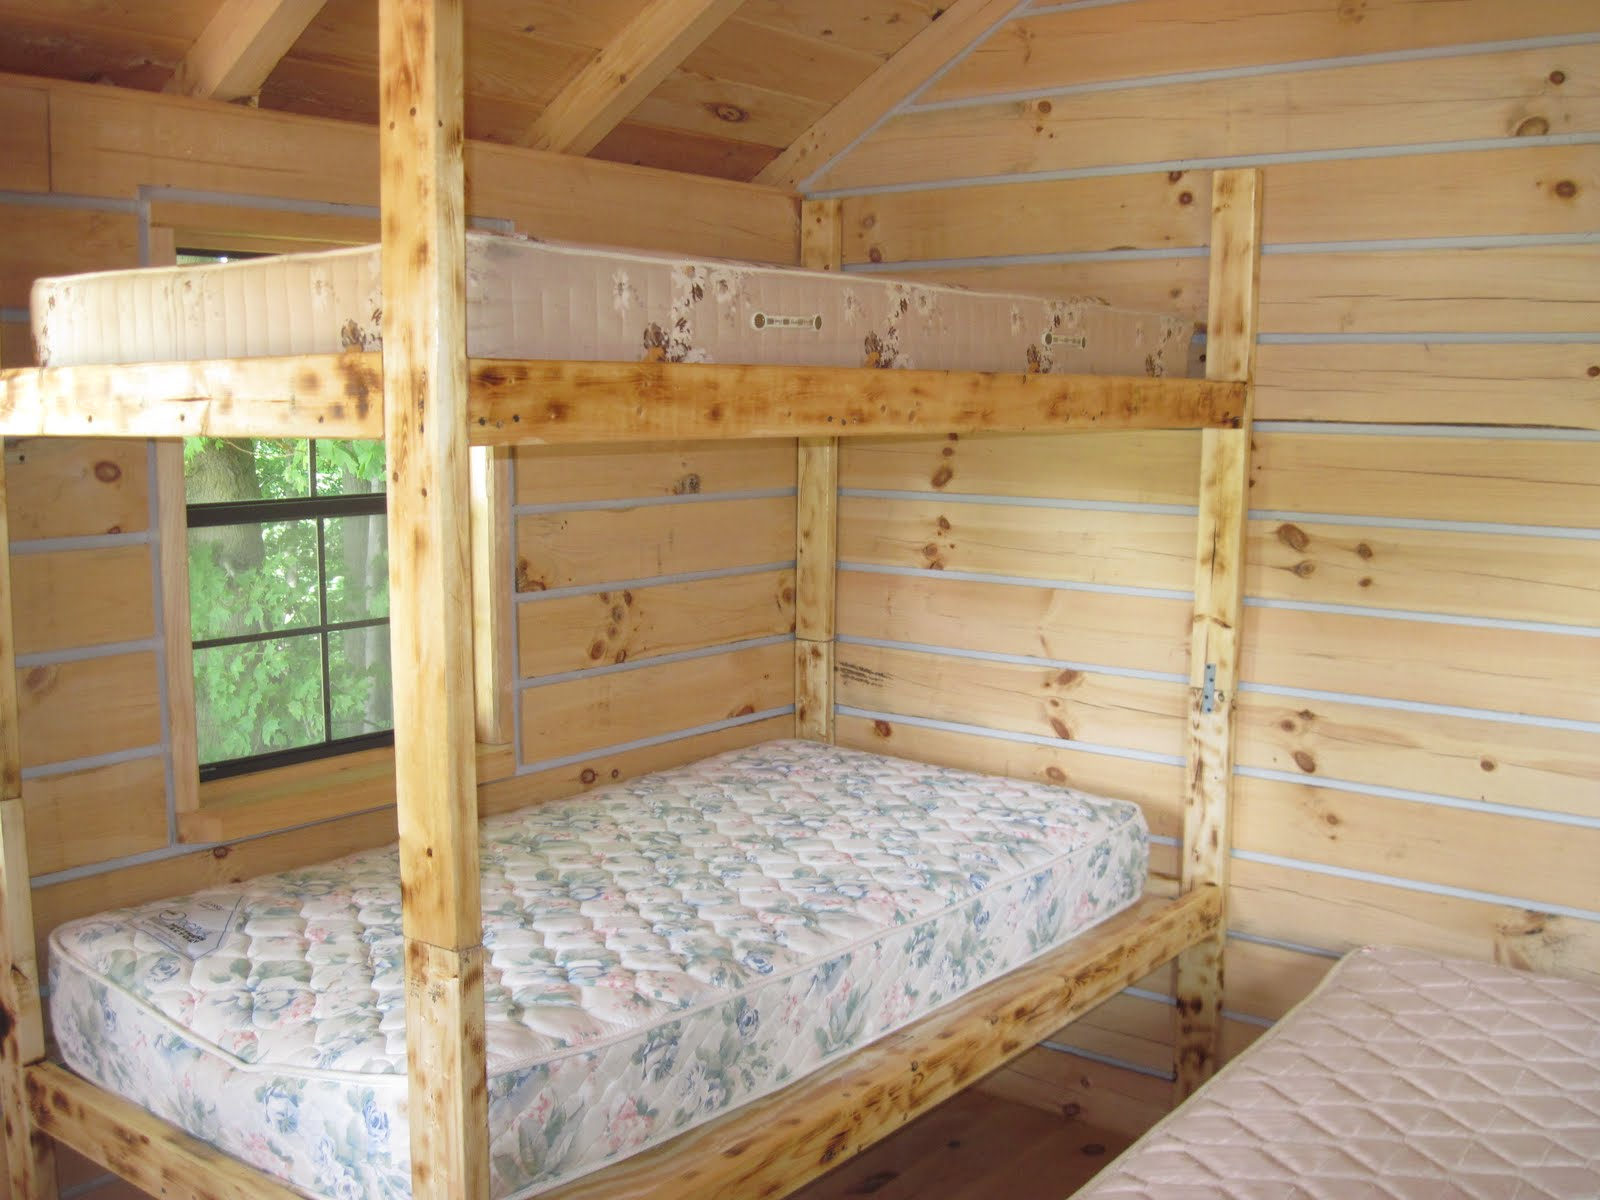 Pdf diy bunk bed plans queen download built in bookshelves 2 twin beds make a queen